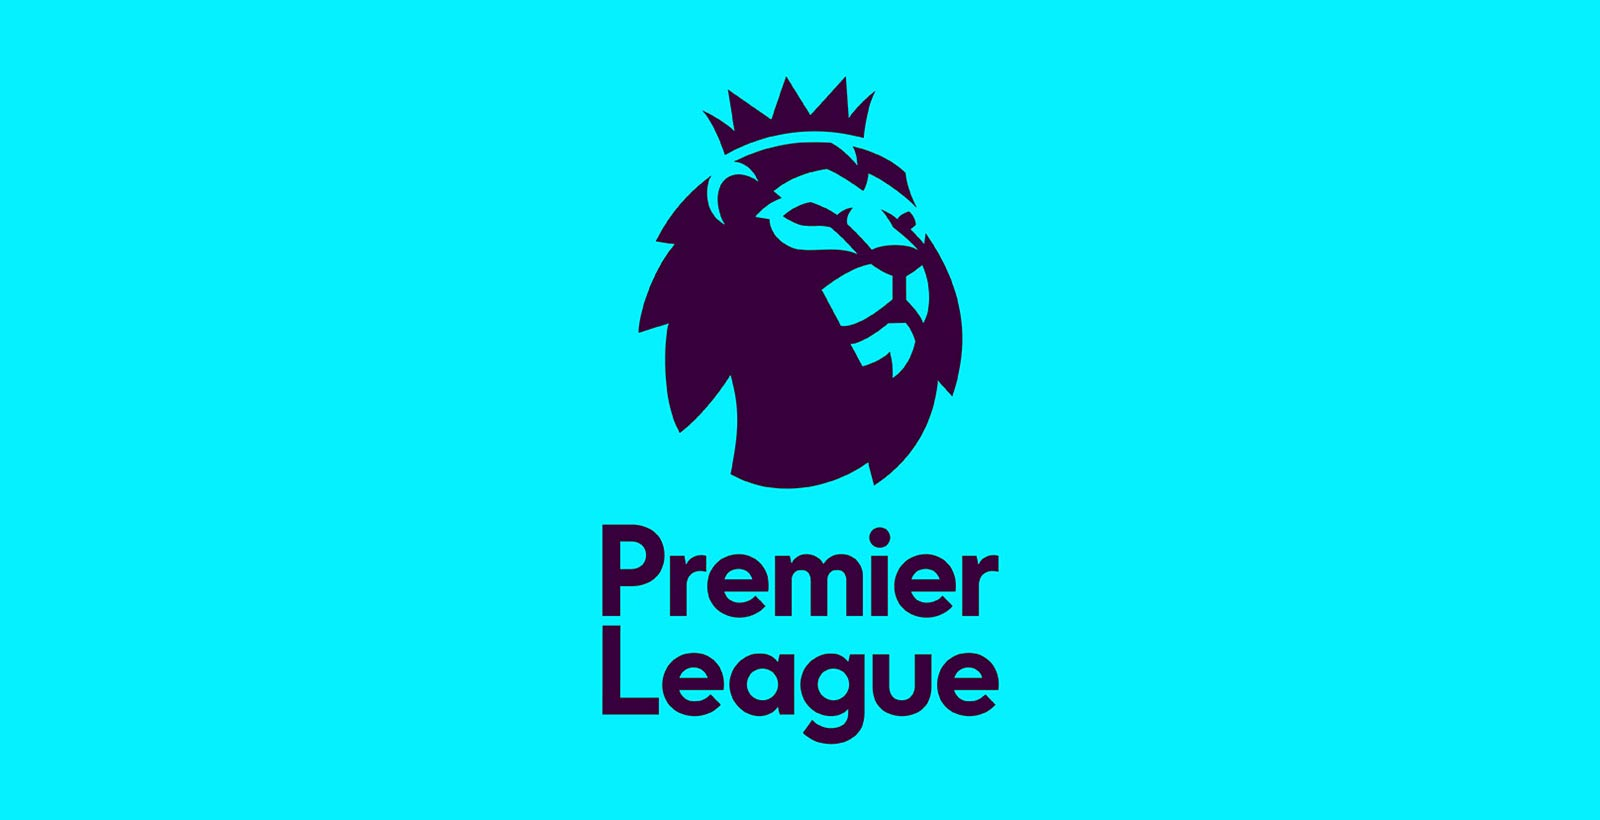 Premier League Teams 2018 2019 flashcards on Tinycards 1600x820